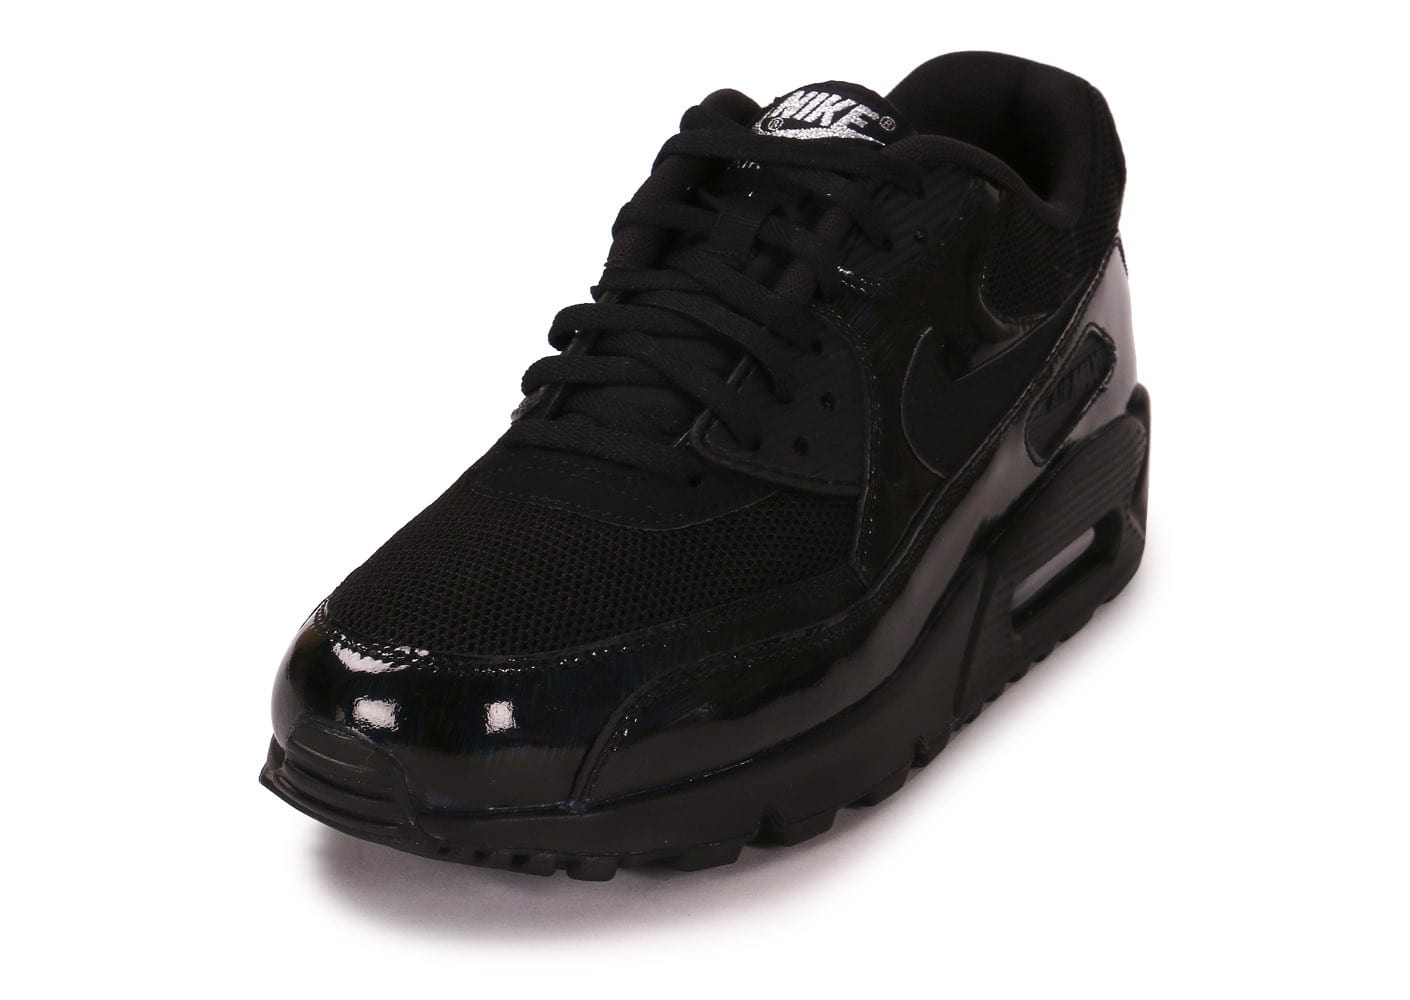 premium selection d878e cbe0c air max 90 noire